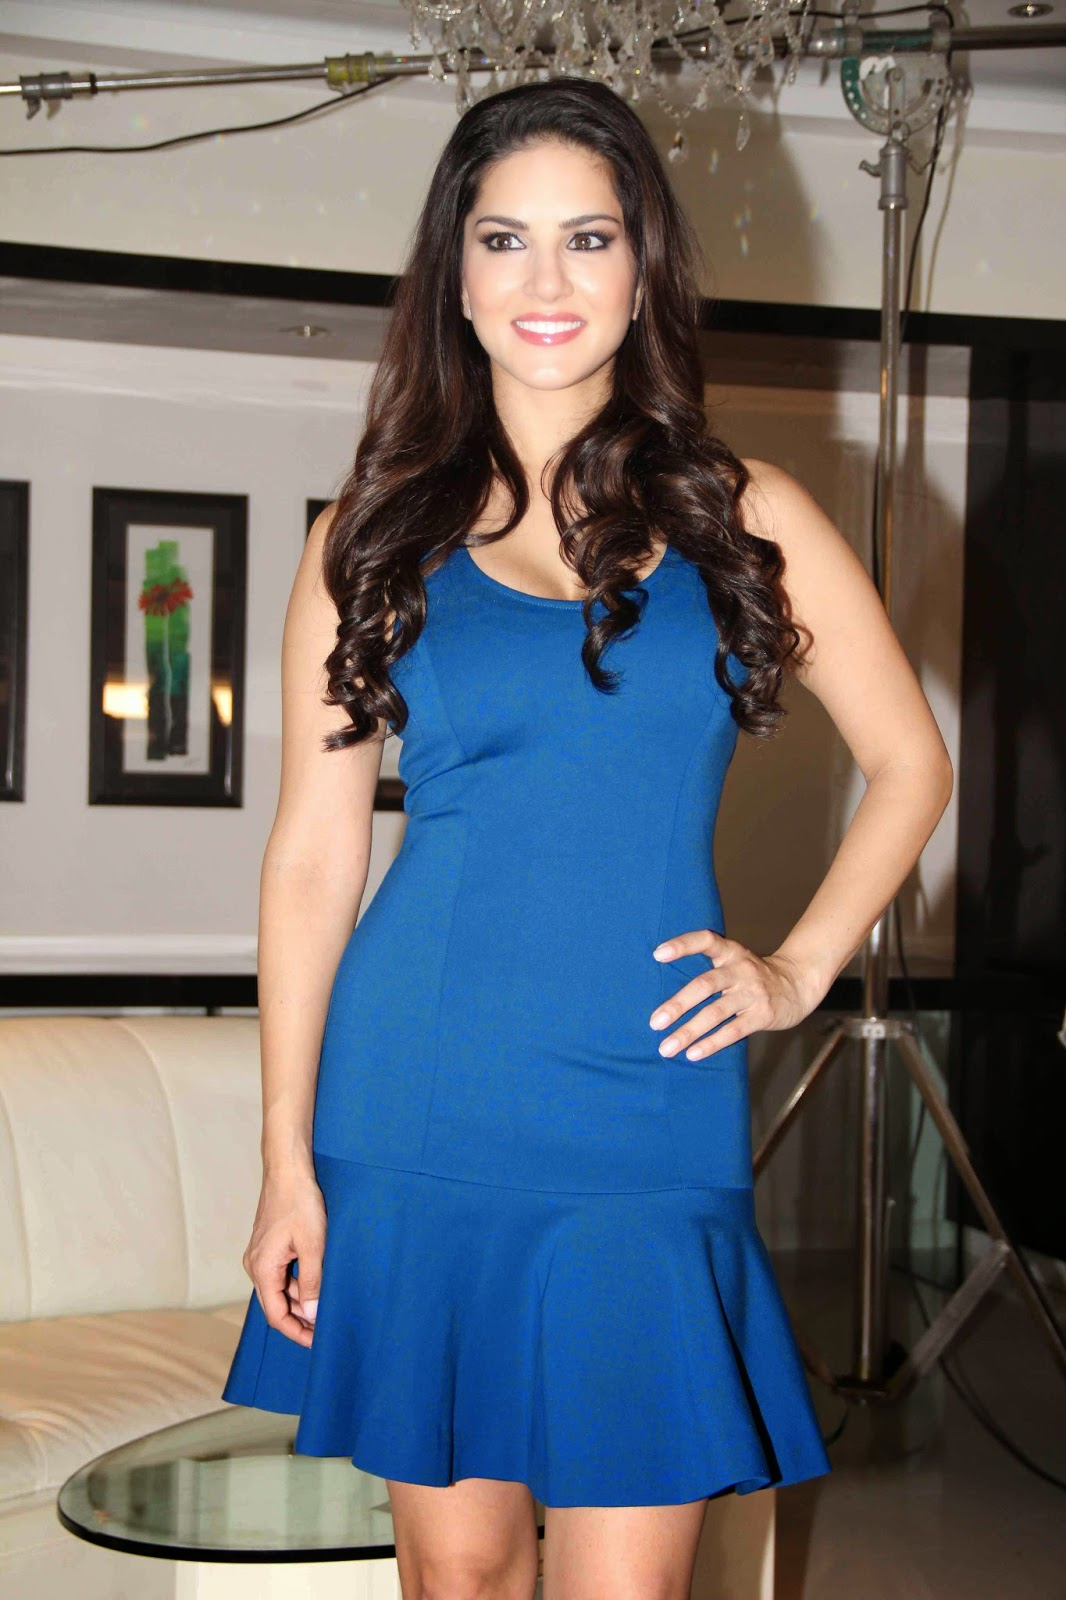 High Quality Bollywood Celebrity Pictures Sunny Leone -3824